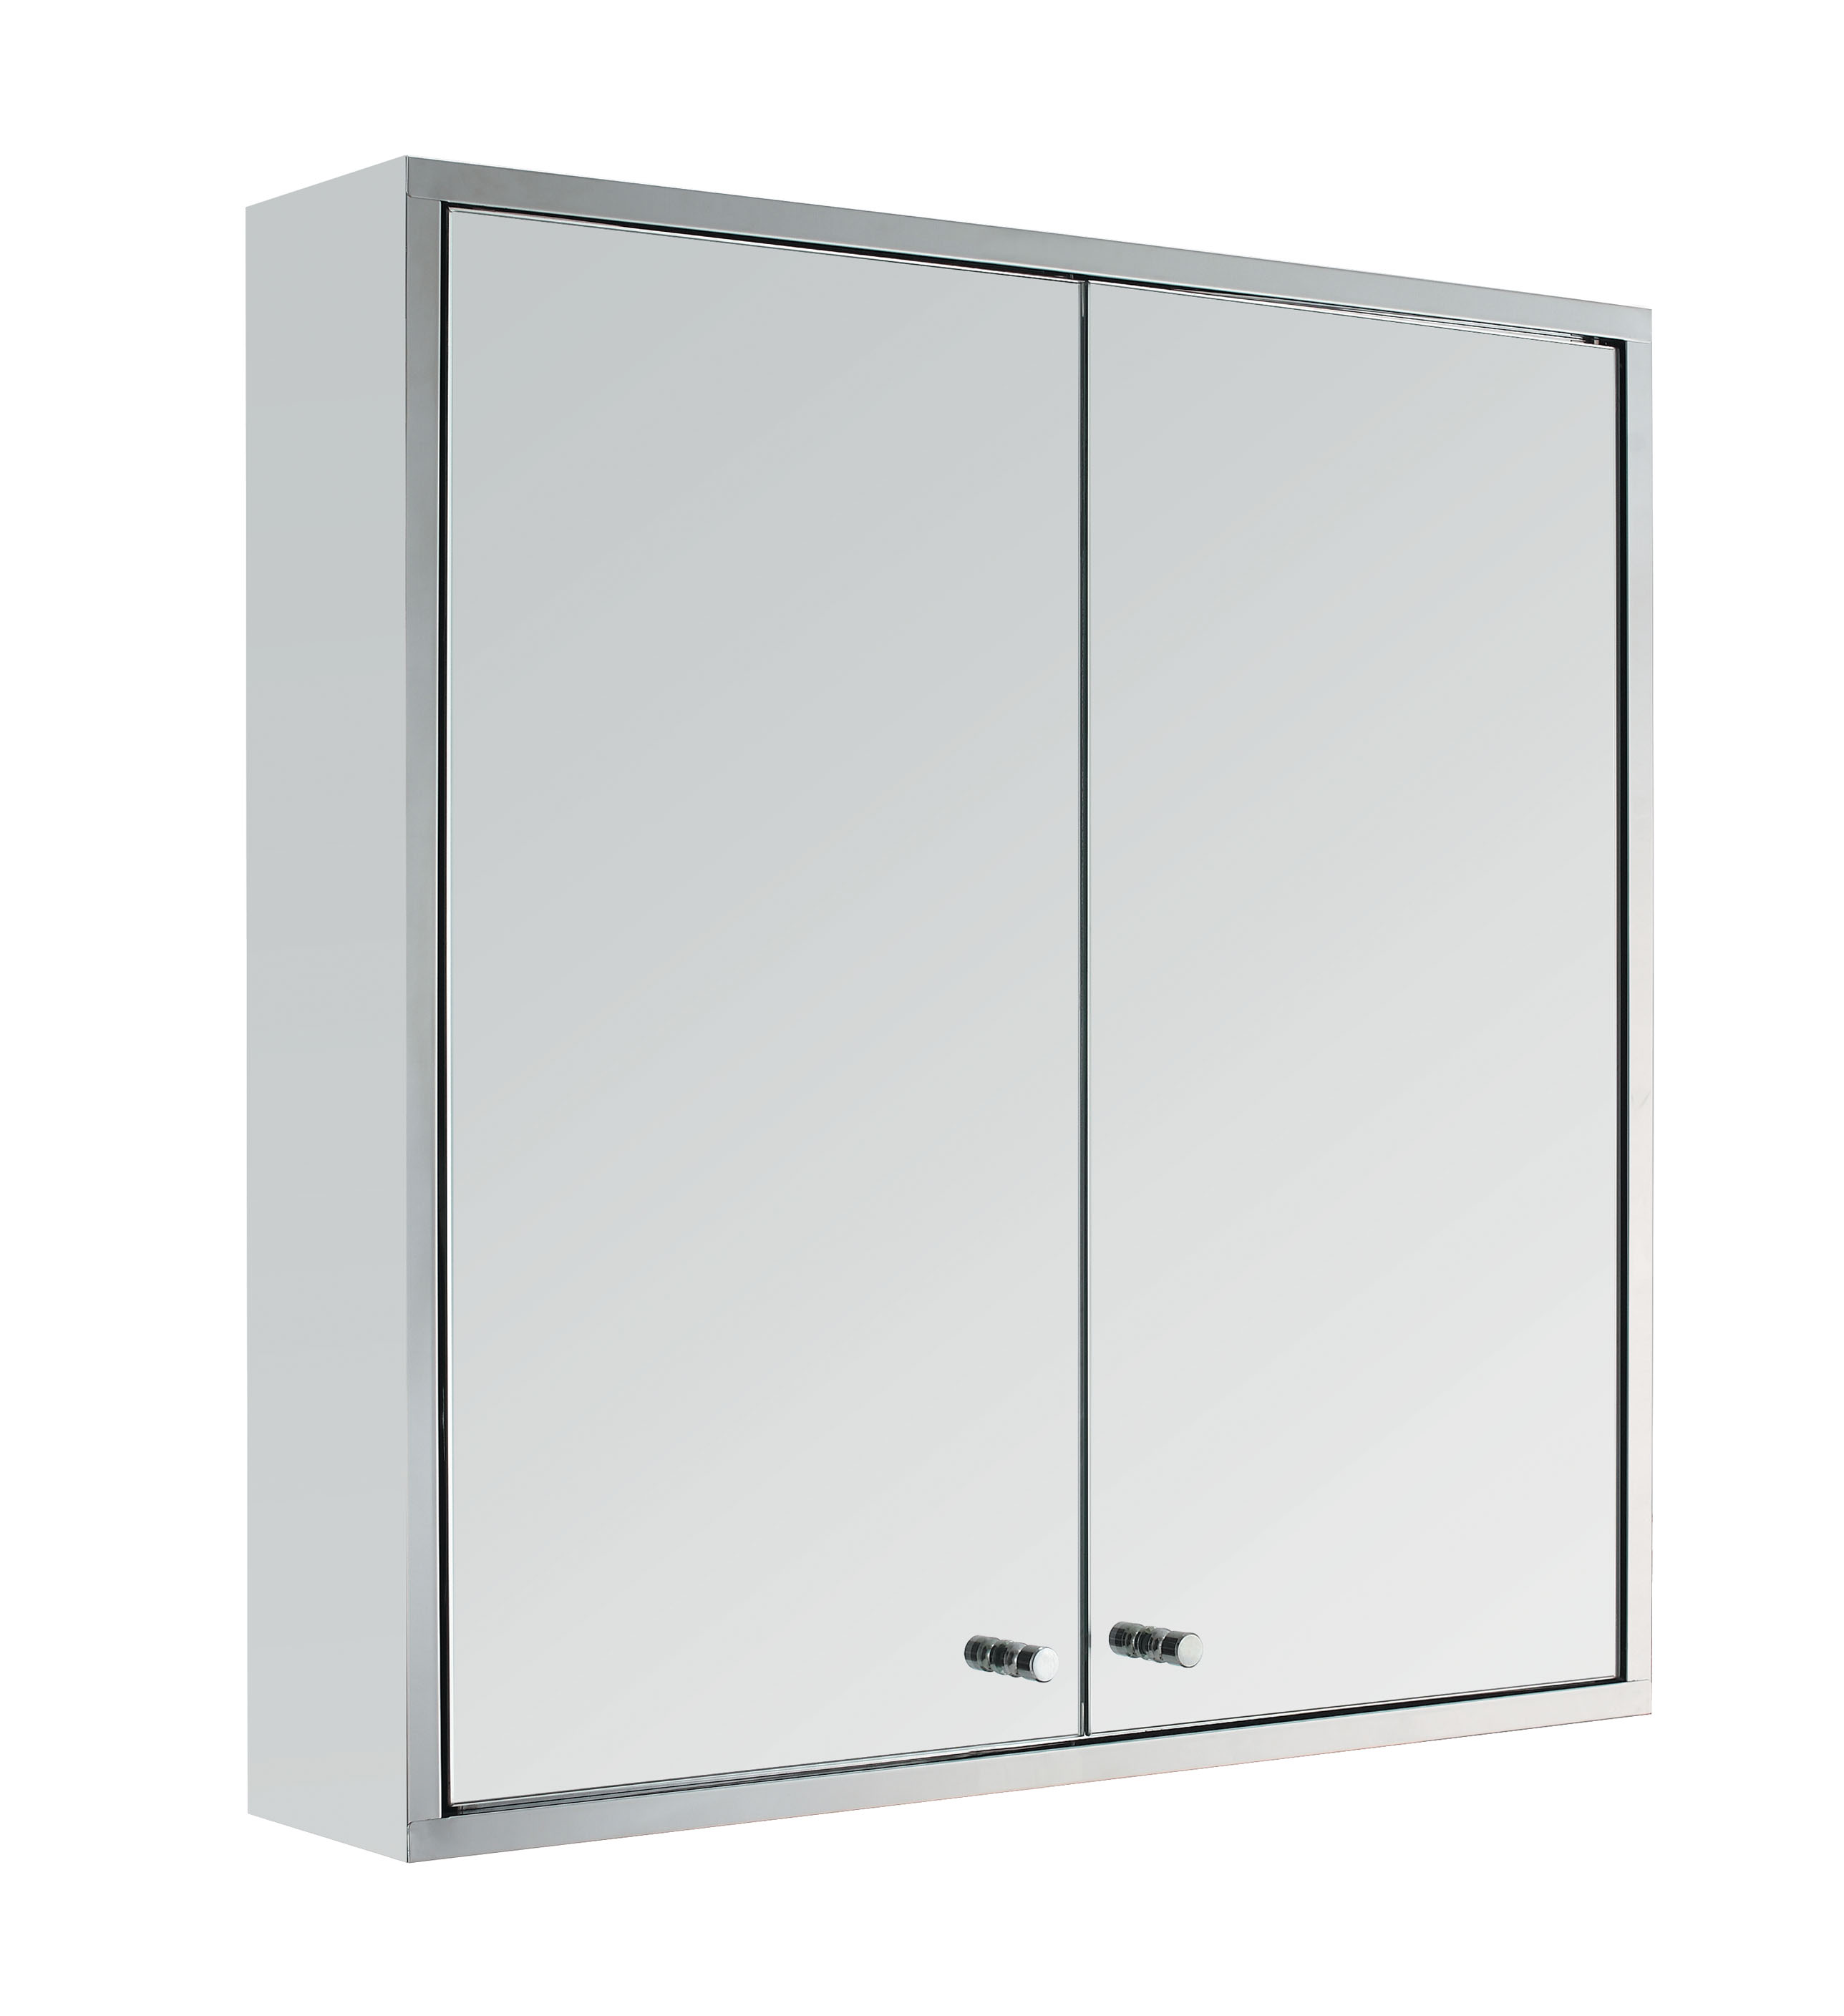 Stainless Steel Wall Mount Bathroom Cabinet With Shelf Storage ...